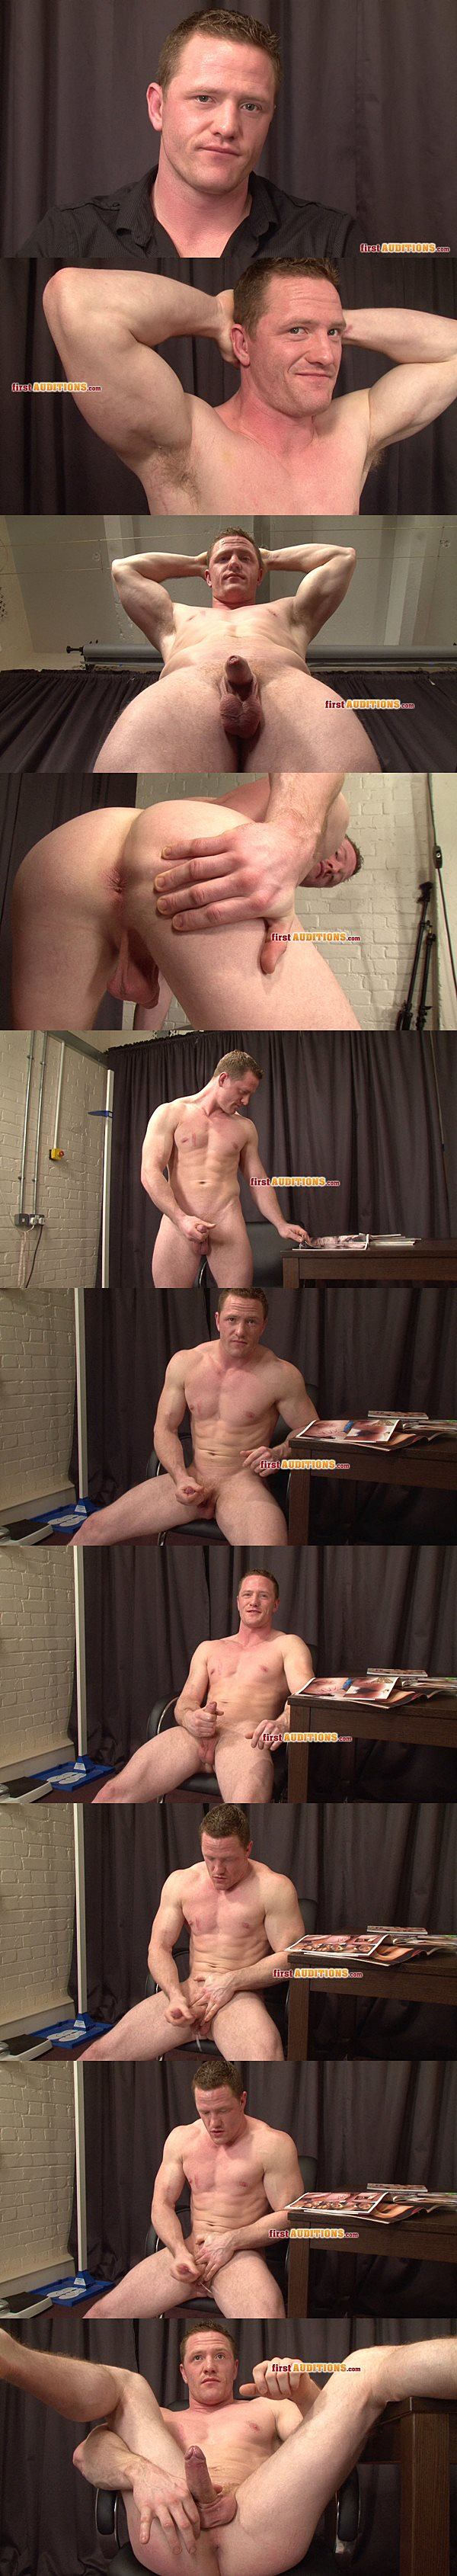 Masculine tough cage fighter Sam reveals his tight virgin hole and blows his hot load at Thecastingroom